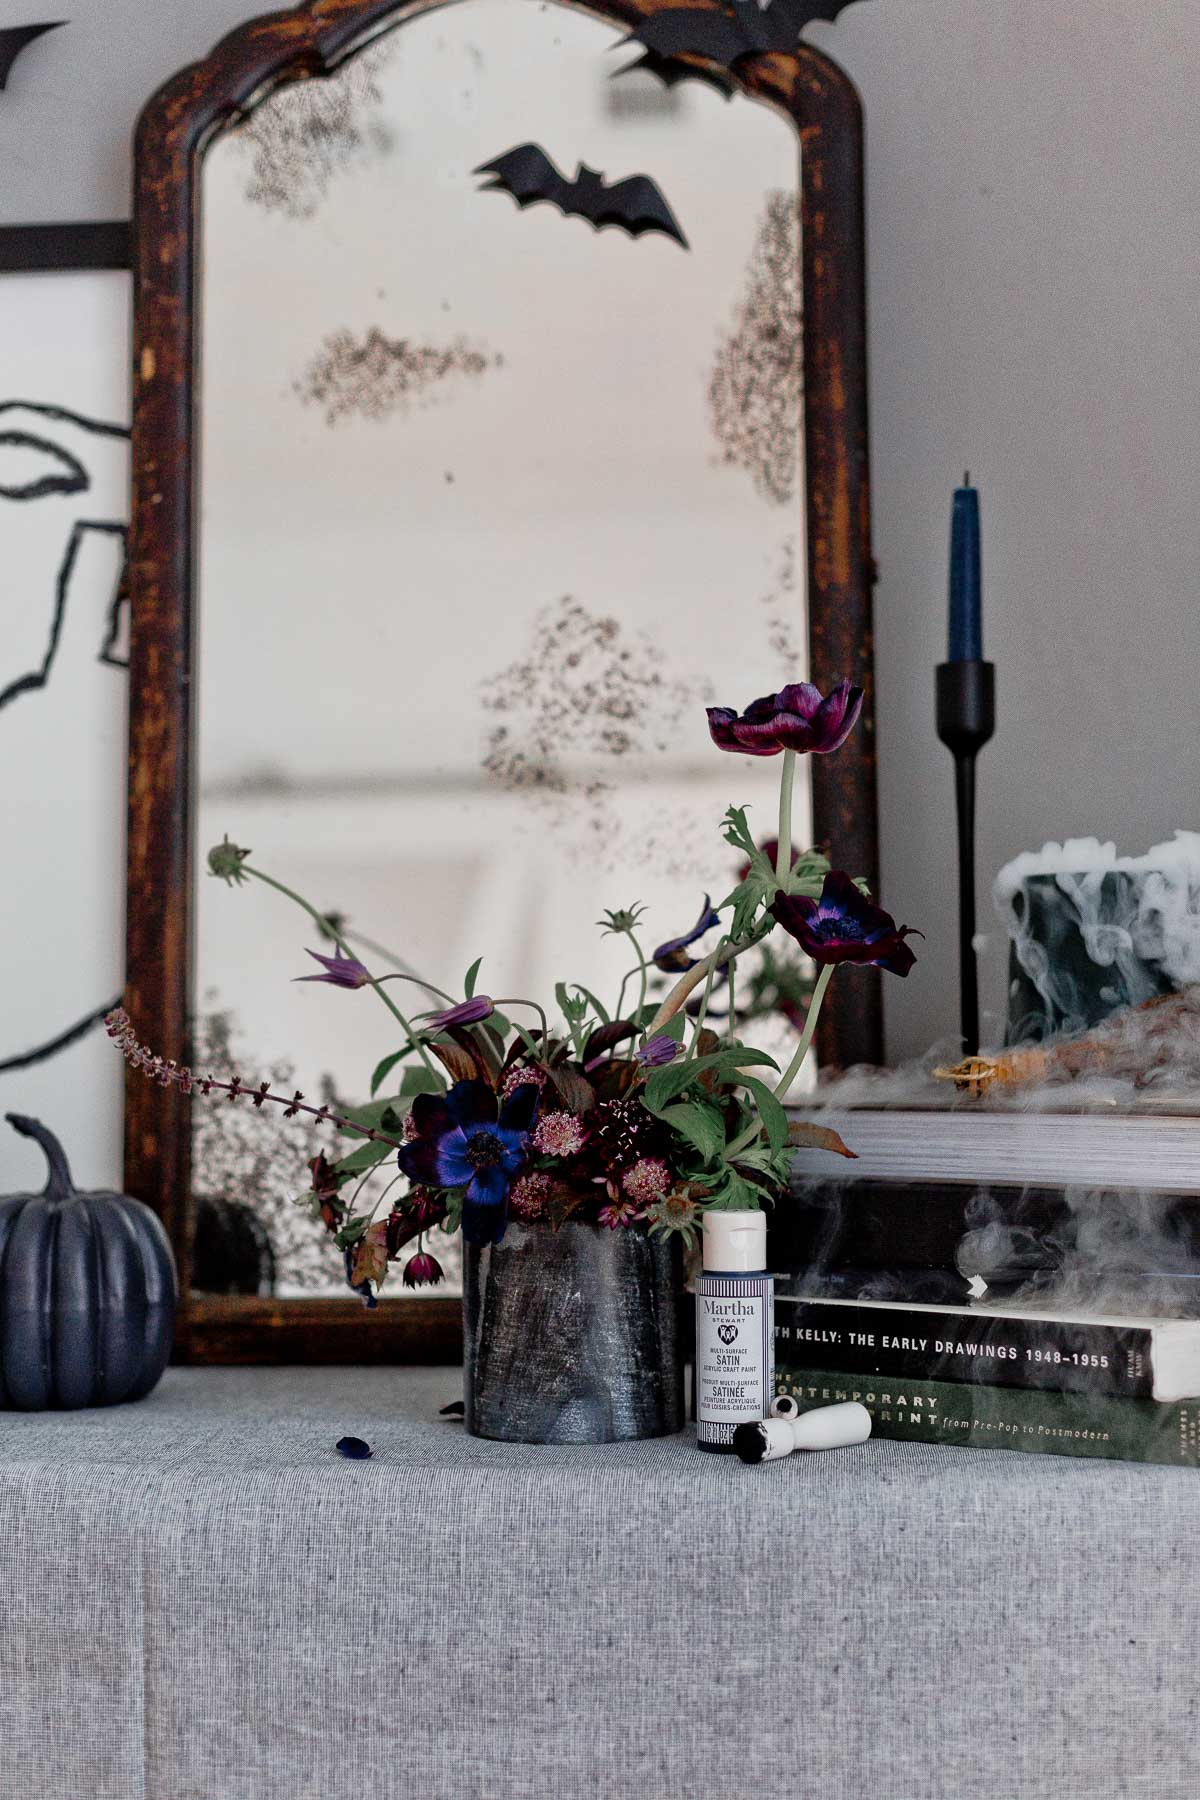 A DIY idea for Halloween decor with stencils and paints.